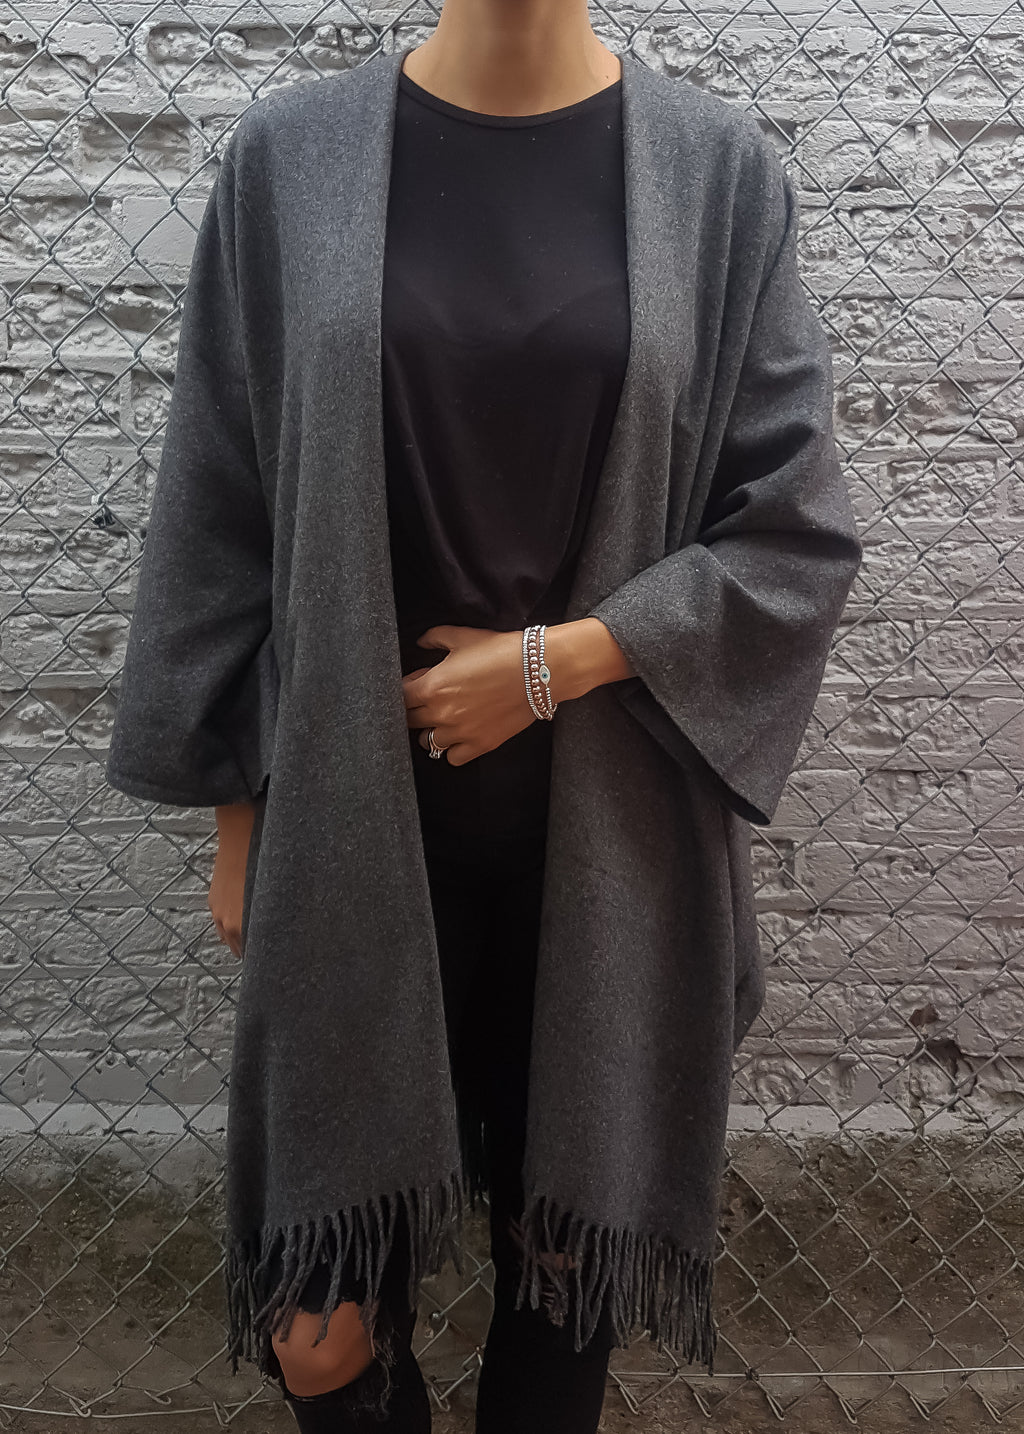 Amour Boho Jacket in Charcoal